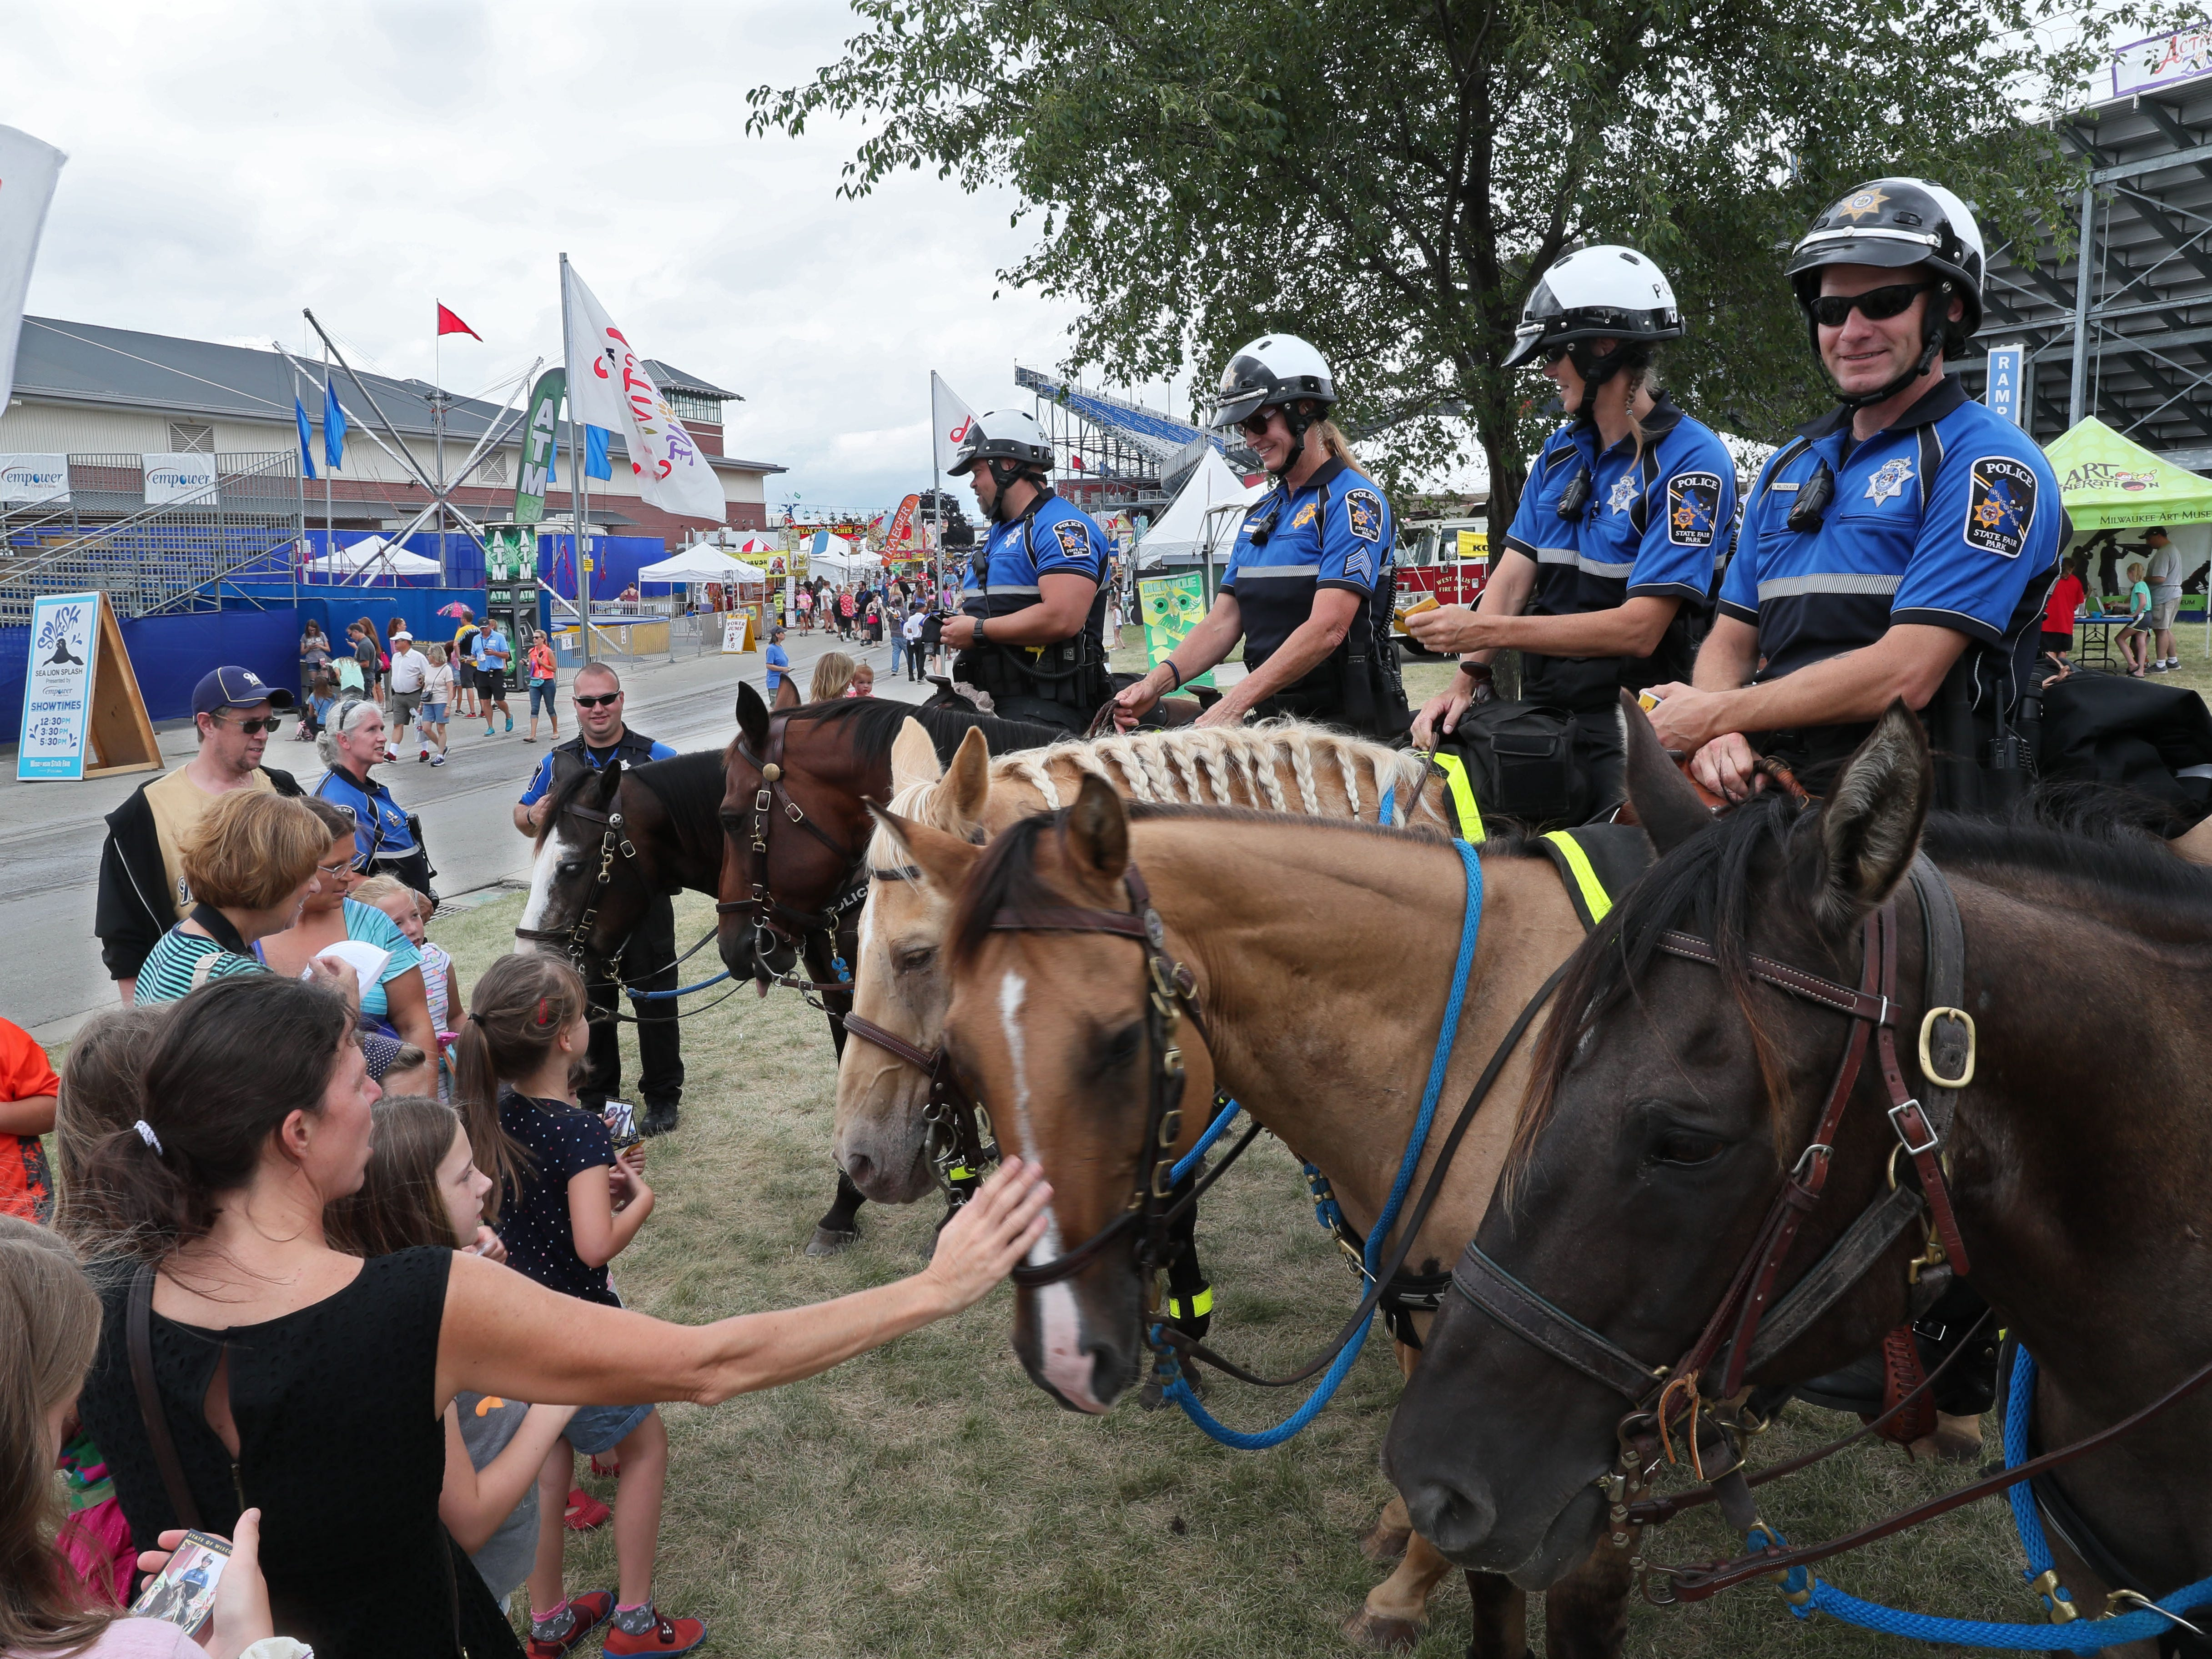 It's the 50th anniversary of the Wisconsin State Fair's mounted police patrol. The riders take time out from patrolling the fair to lead the daily parade and afterward people take time to get to know the officers and their horses.